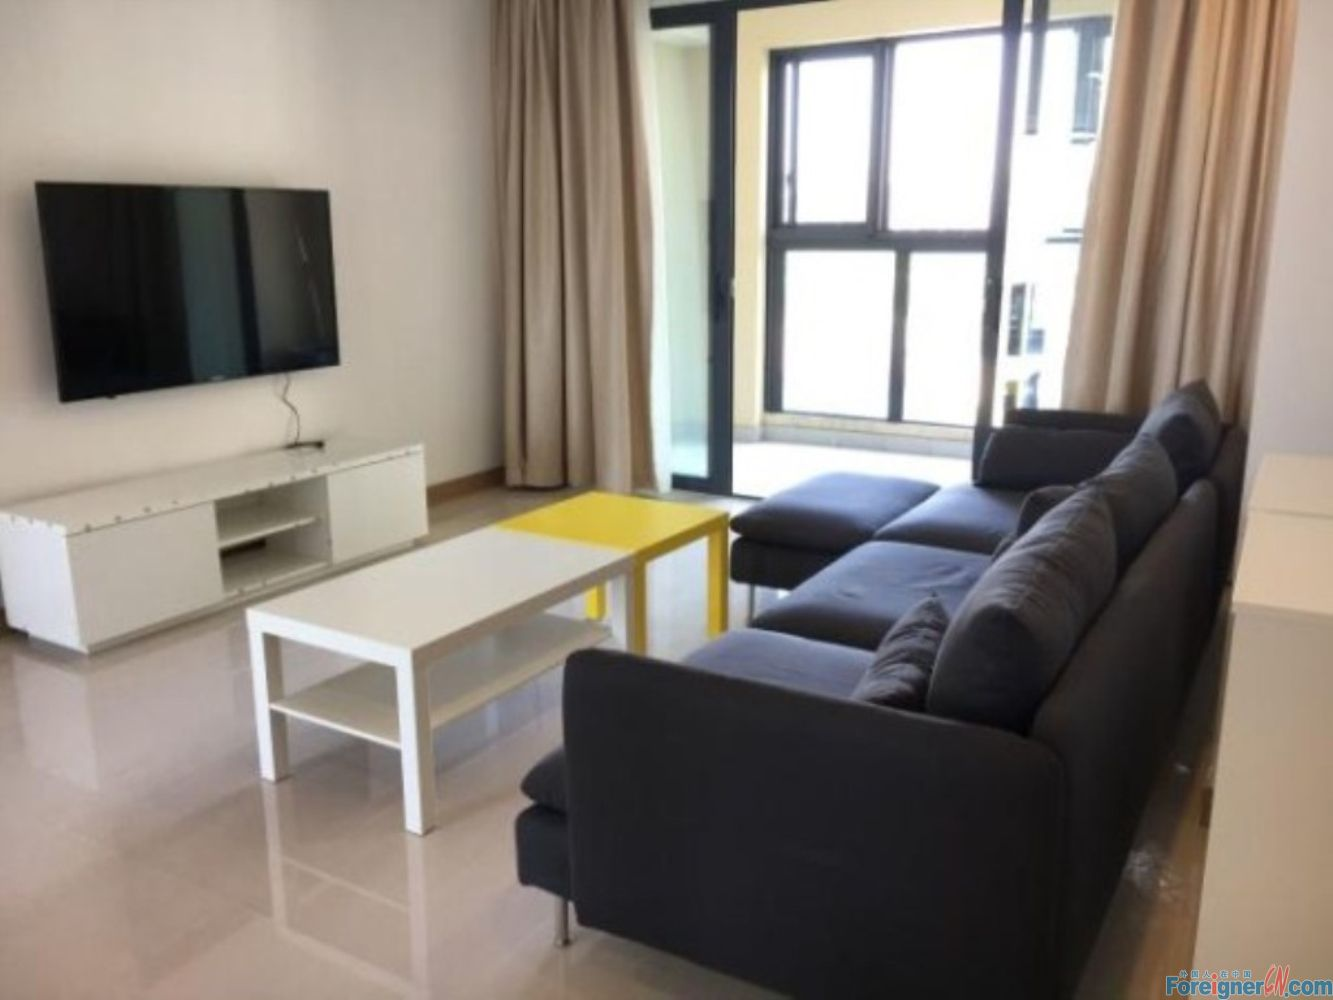 Terrific! Quiet and Clean/Close to Jiulong Hospital and Baitang Park/3 Bedrooms & 2 Bathrooms/With Small Balcony/Well Furnished/Spacious and Homely